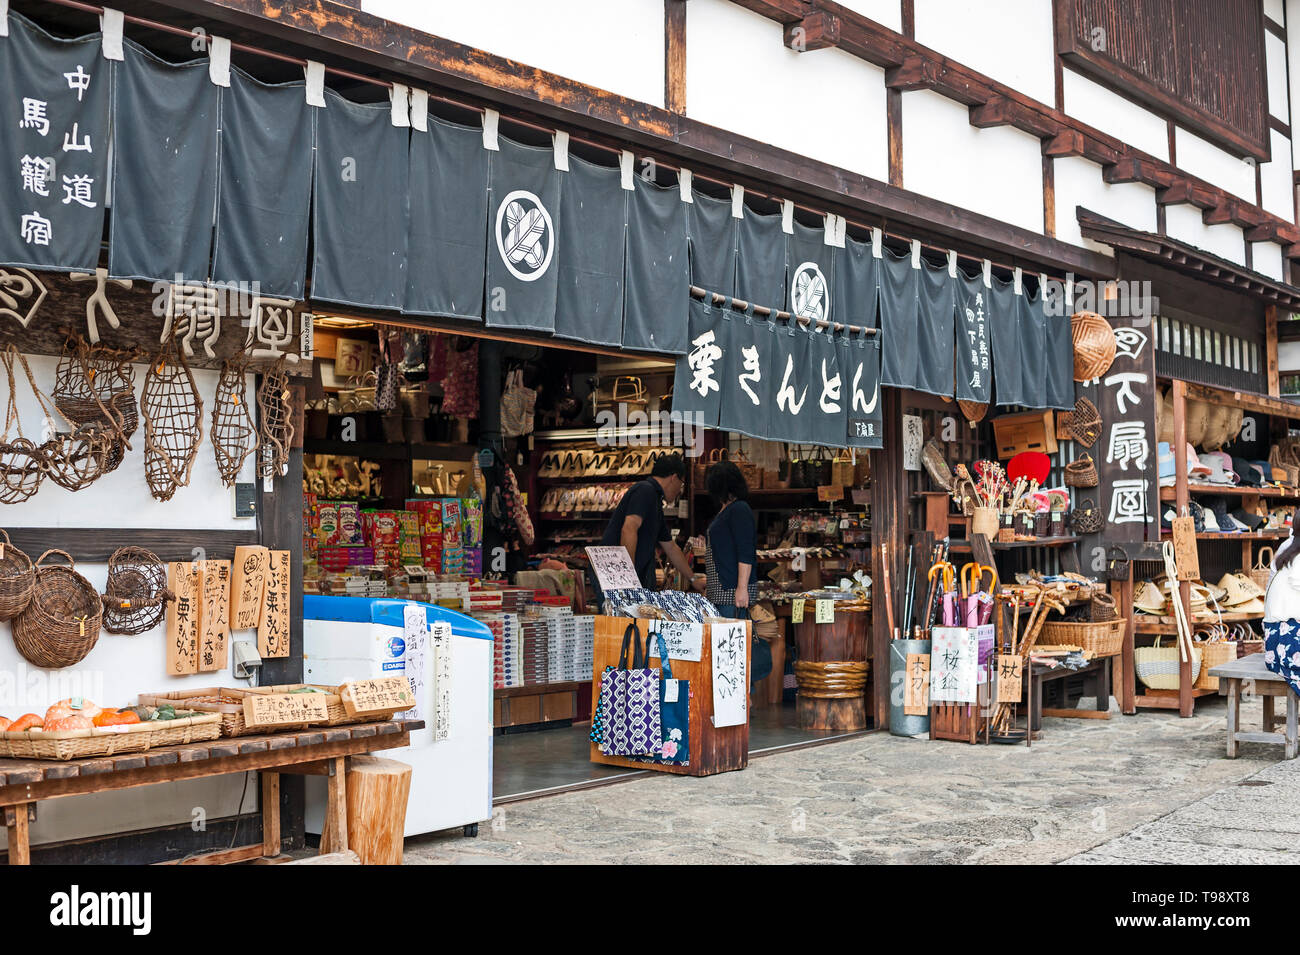 Old fashioned shop selling a wide variety of goods in Magome, Nakasugawa, Japan, situated on the Nakasendo route of postal towns. - Stock Image